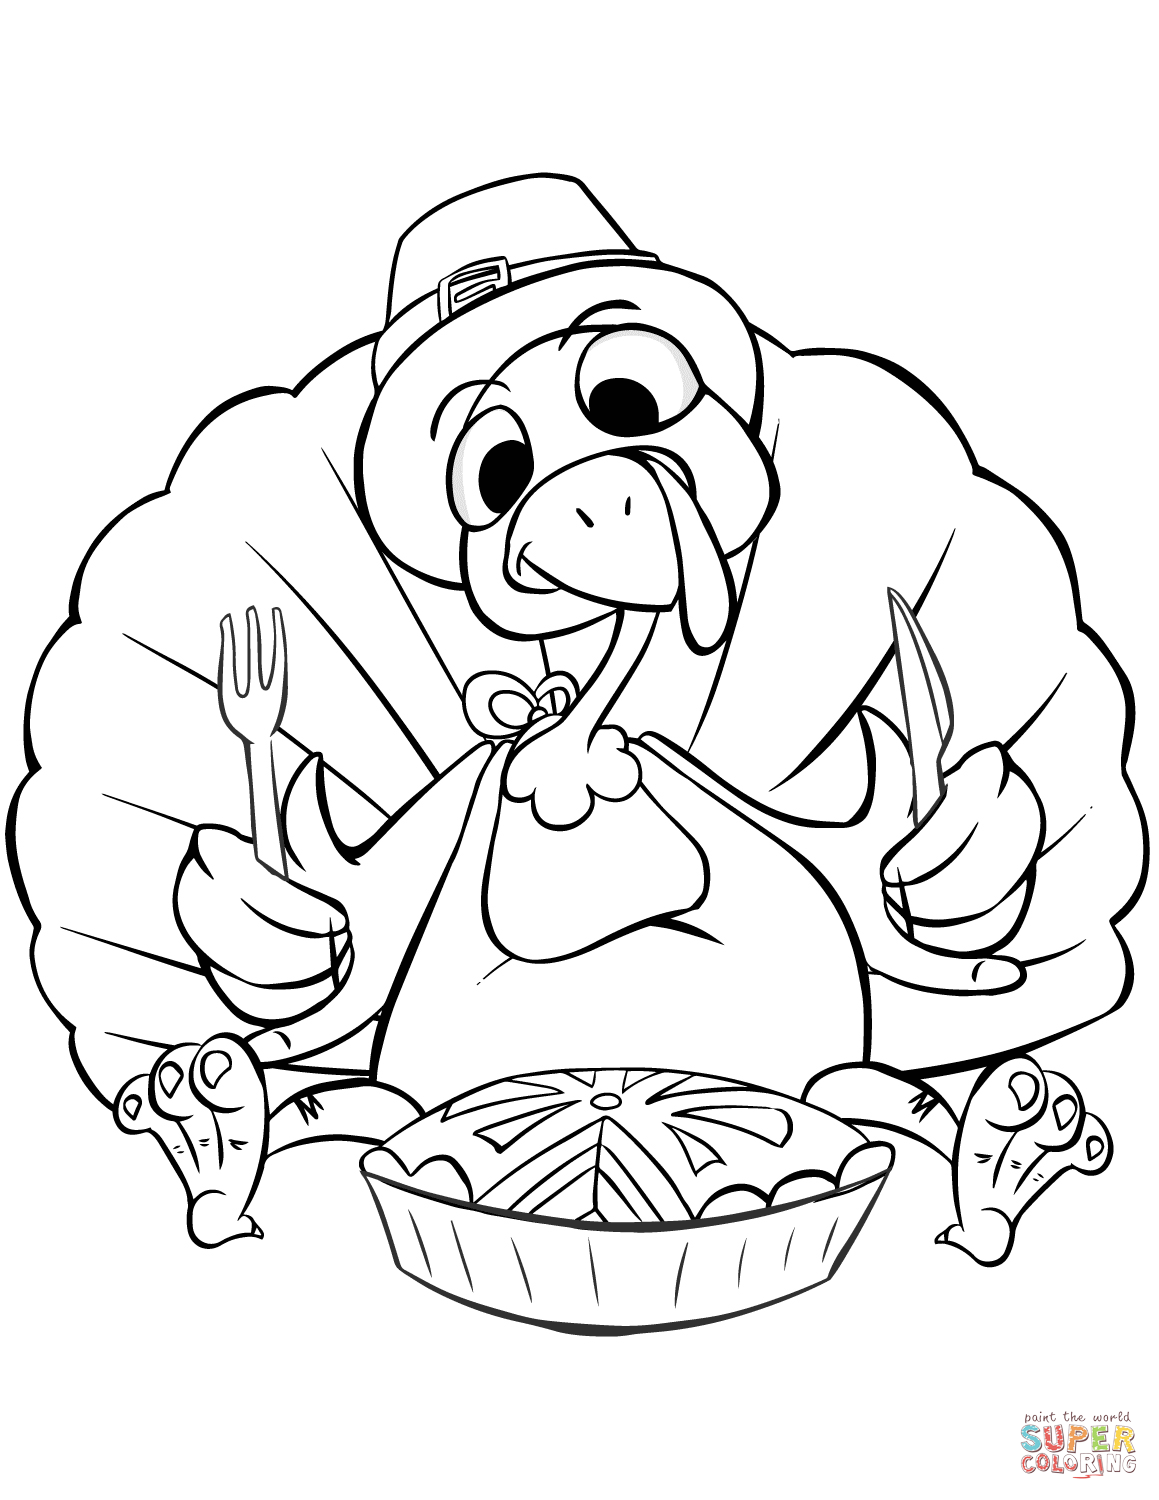 thanksgiving dinner coloring pages family at thanksgiving dinner table thanksgiving dinner coloring pages dinner thanksgiving